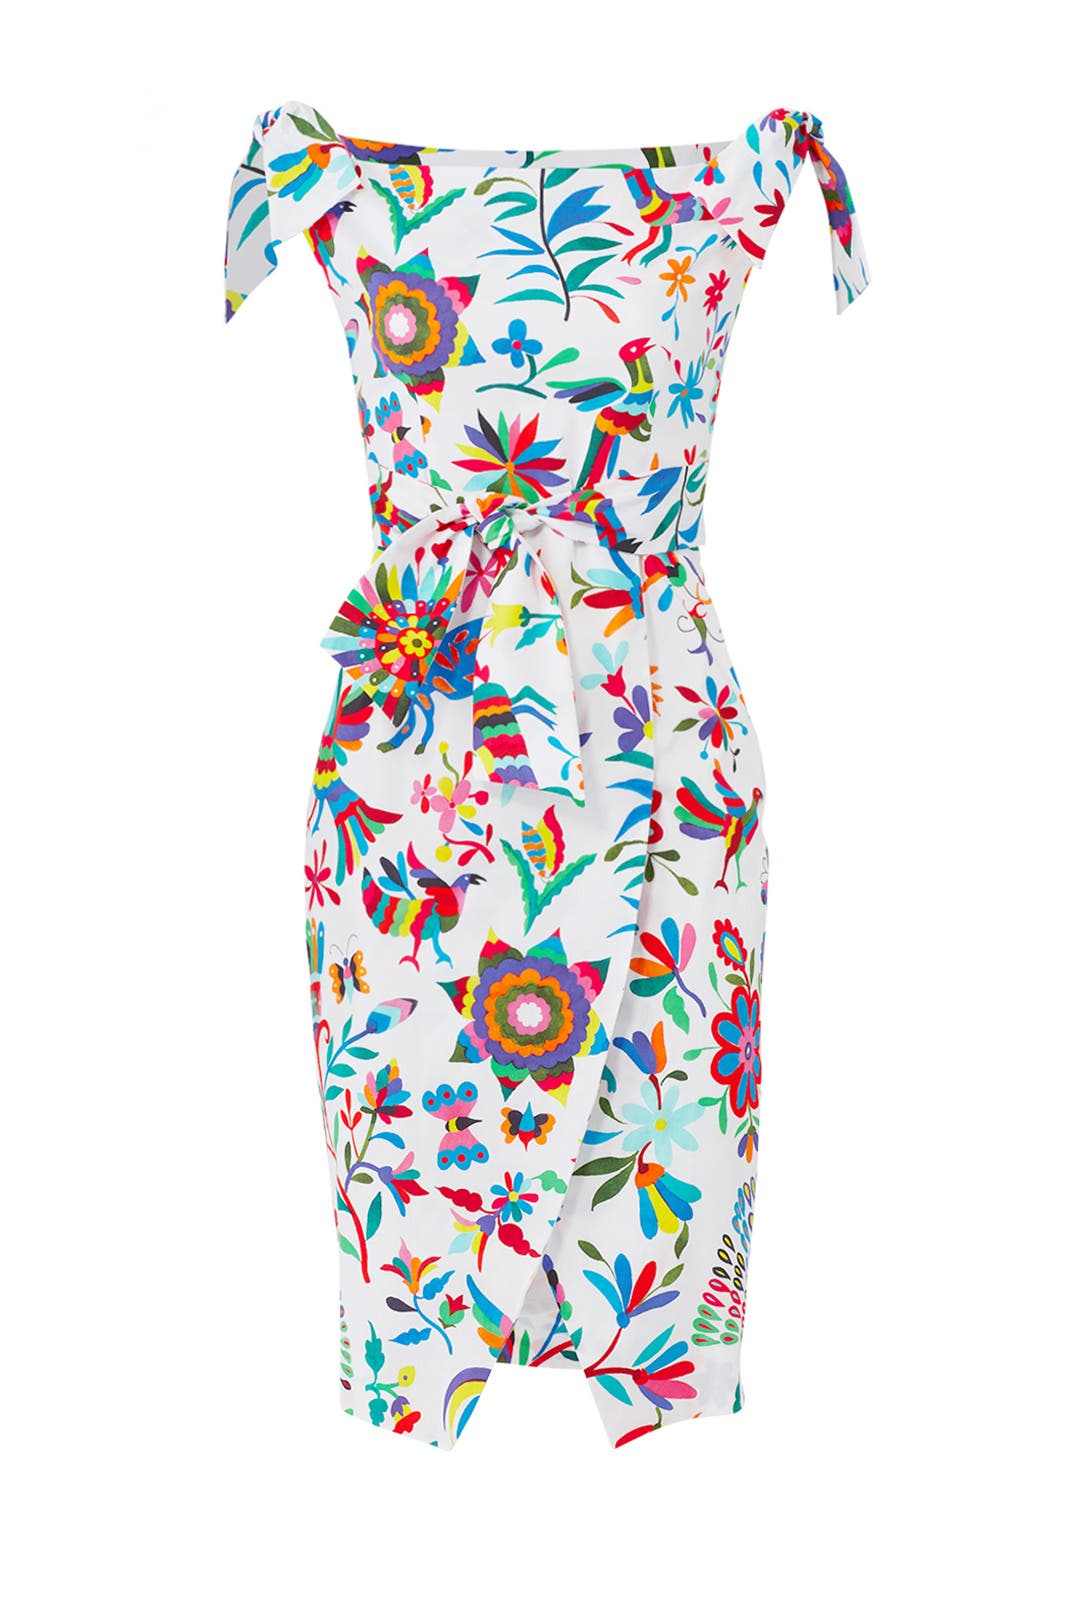 Printed Ellen Dress by Milly for $50 - $80 | Rent the Runway